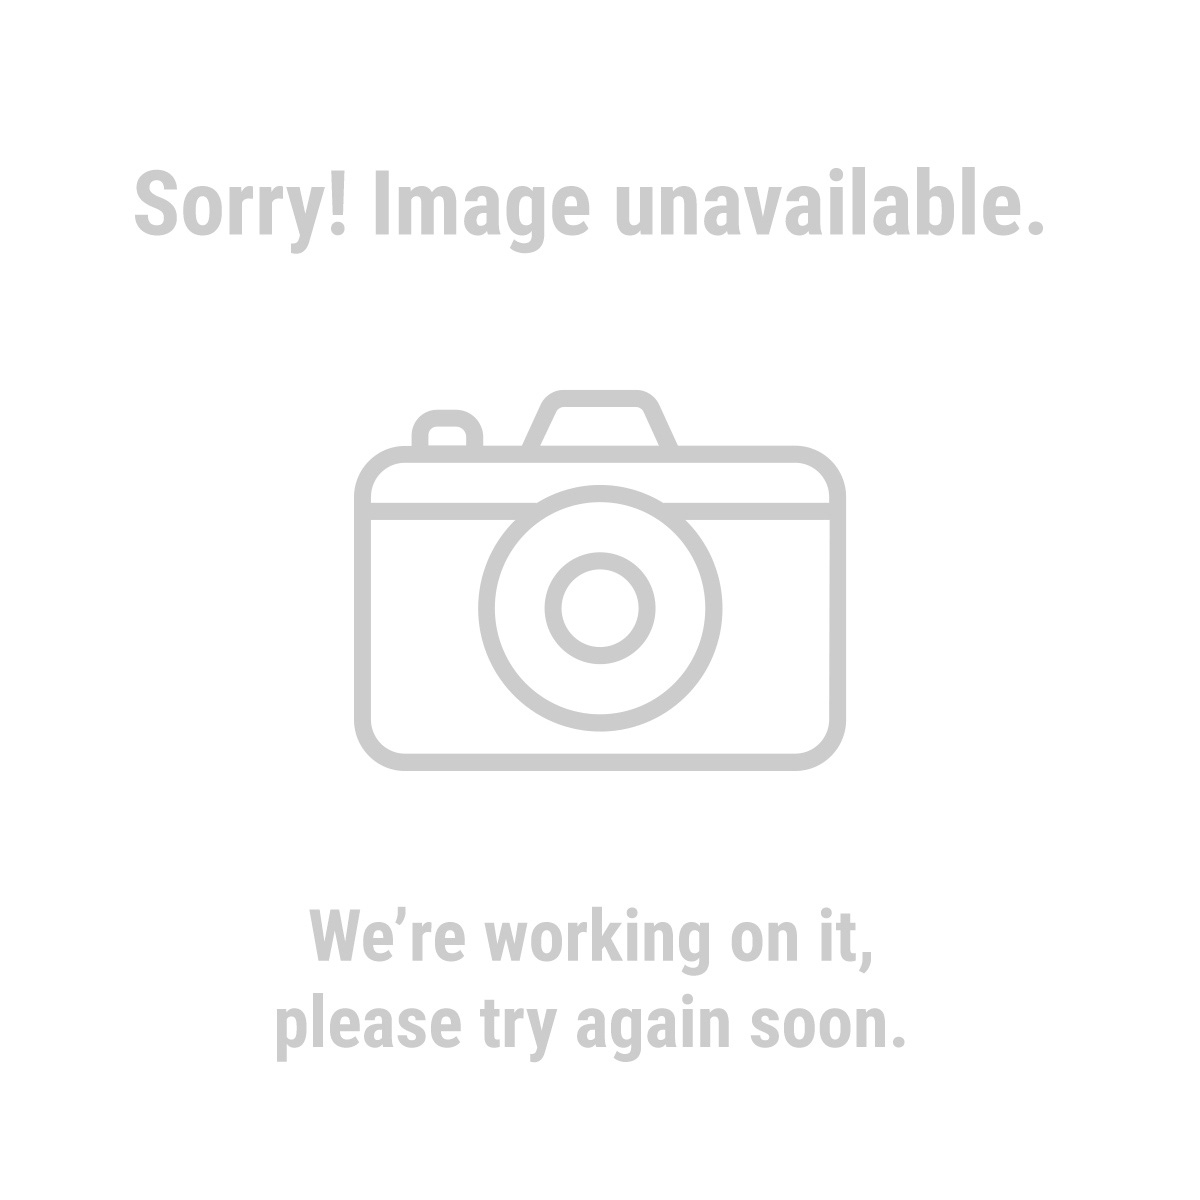 93792 24 Oz. Industrial Adhesive Spray